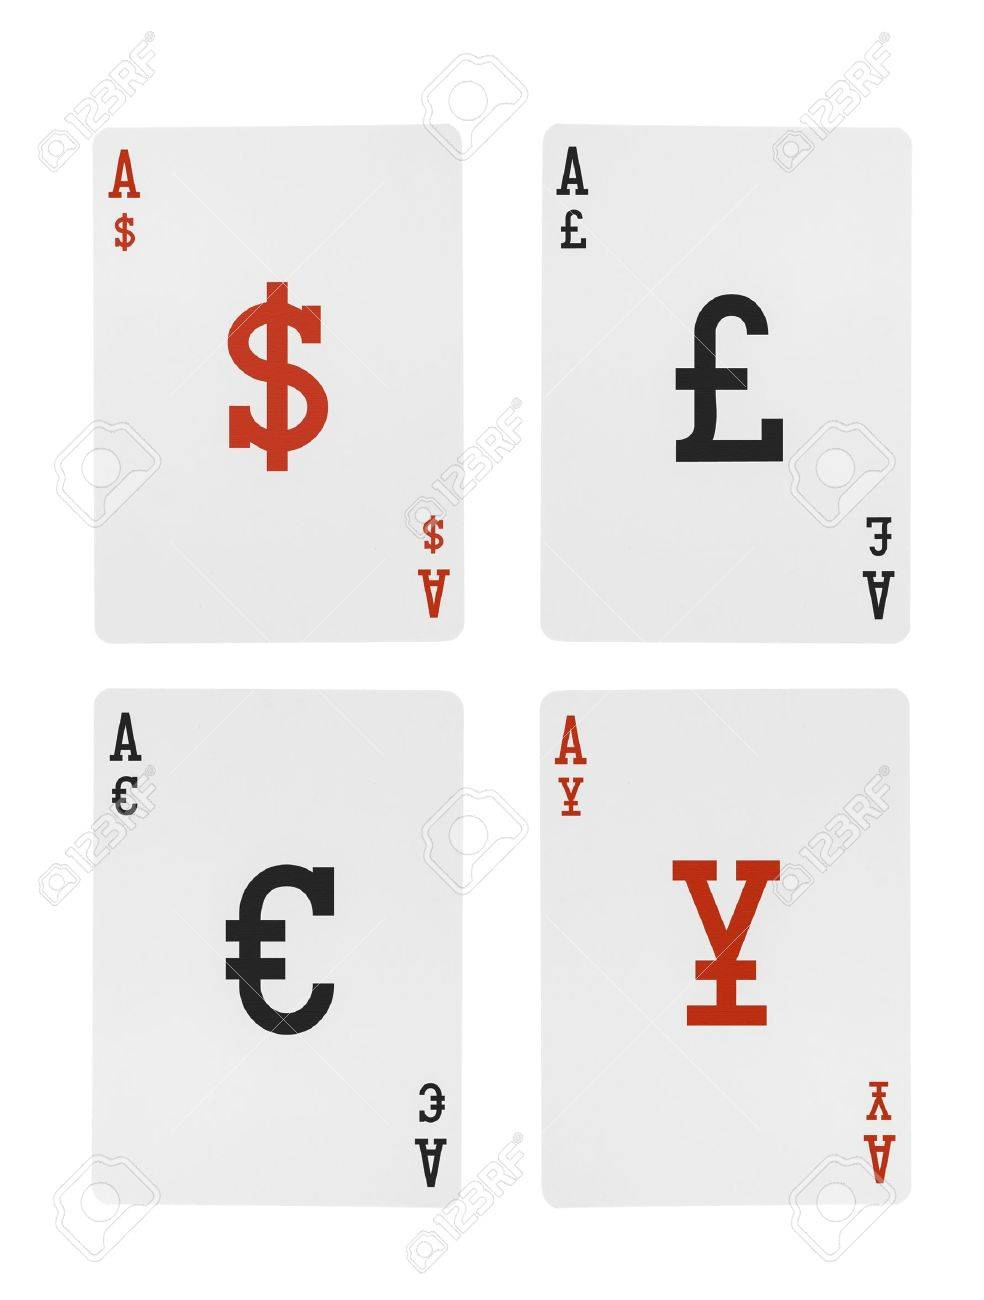 Foreign exchange playing cards aces dollar euro pound yen symbols foreign exchange playing cards aces dollar euro pound yen symbols stock photo 20885046 biocorpaavc Images